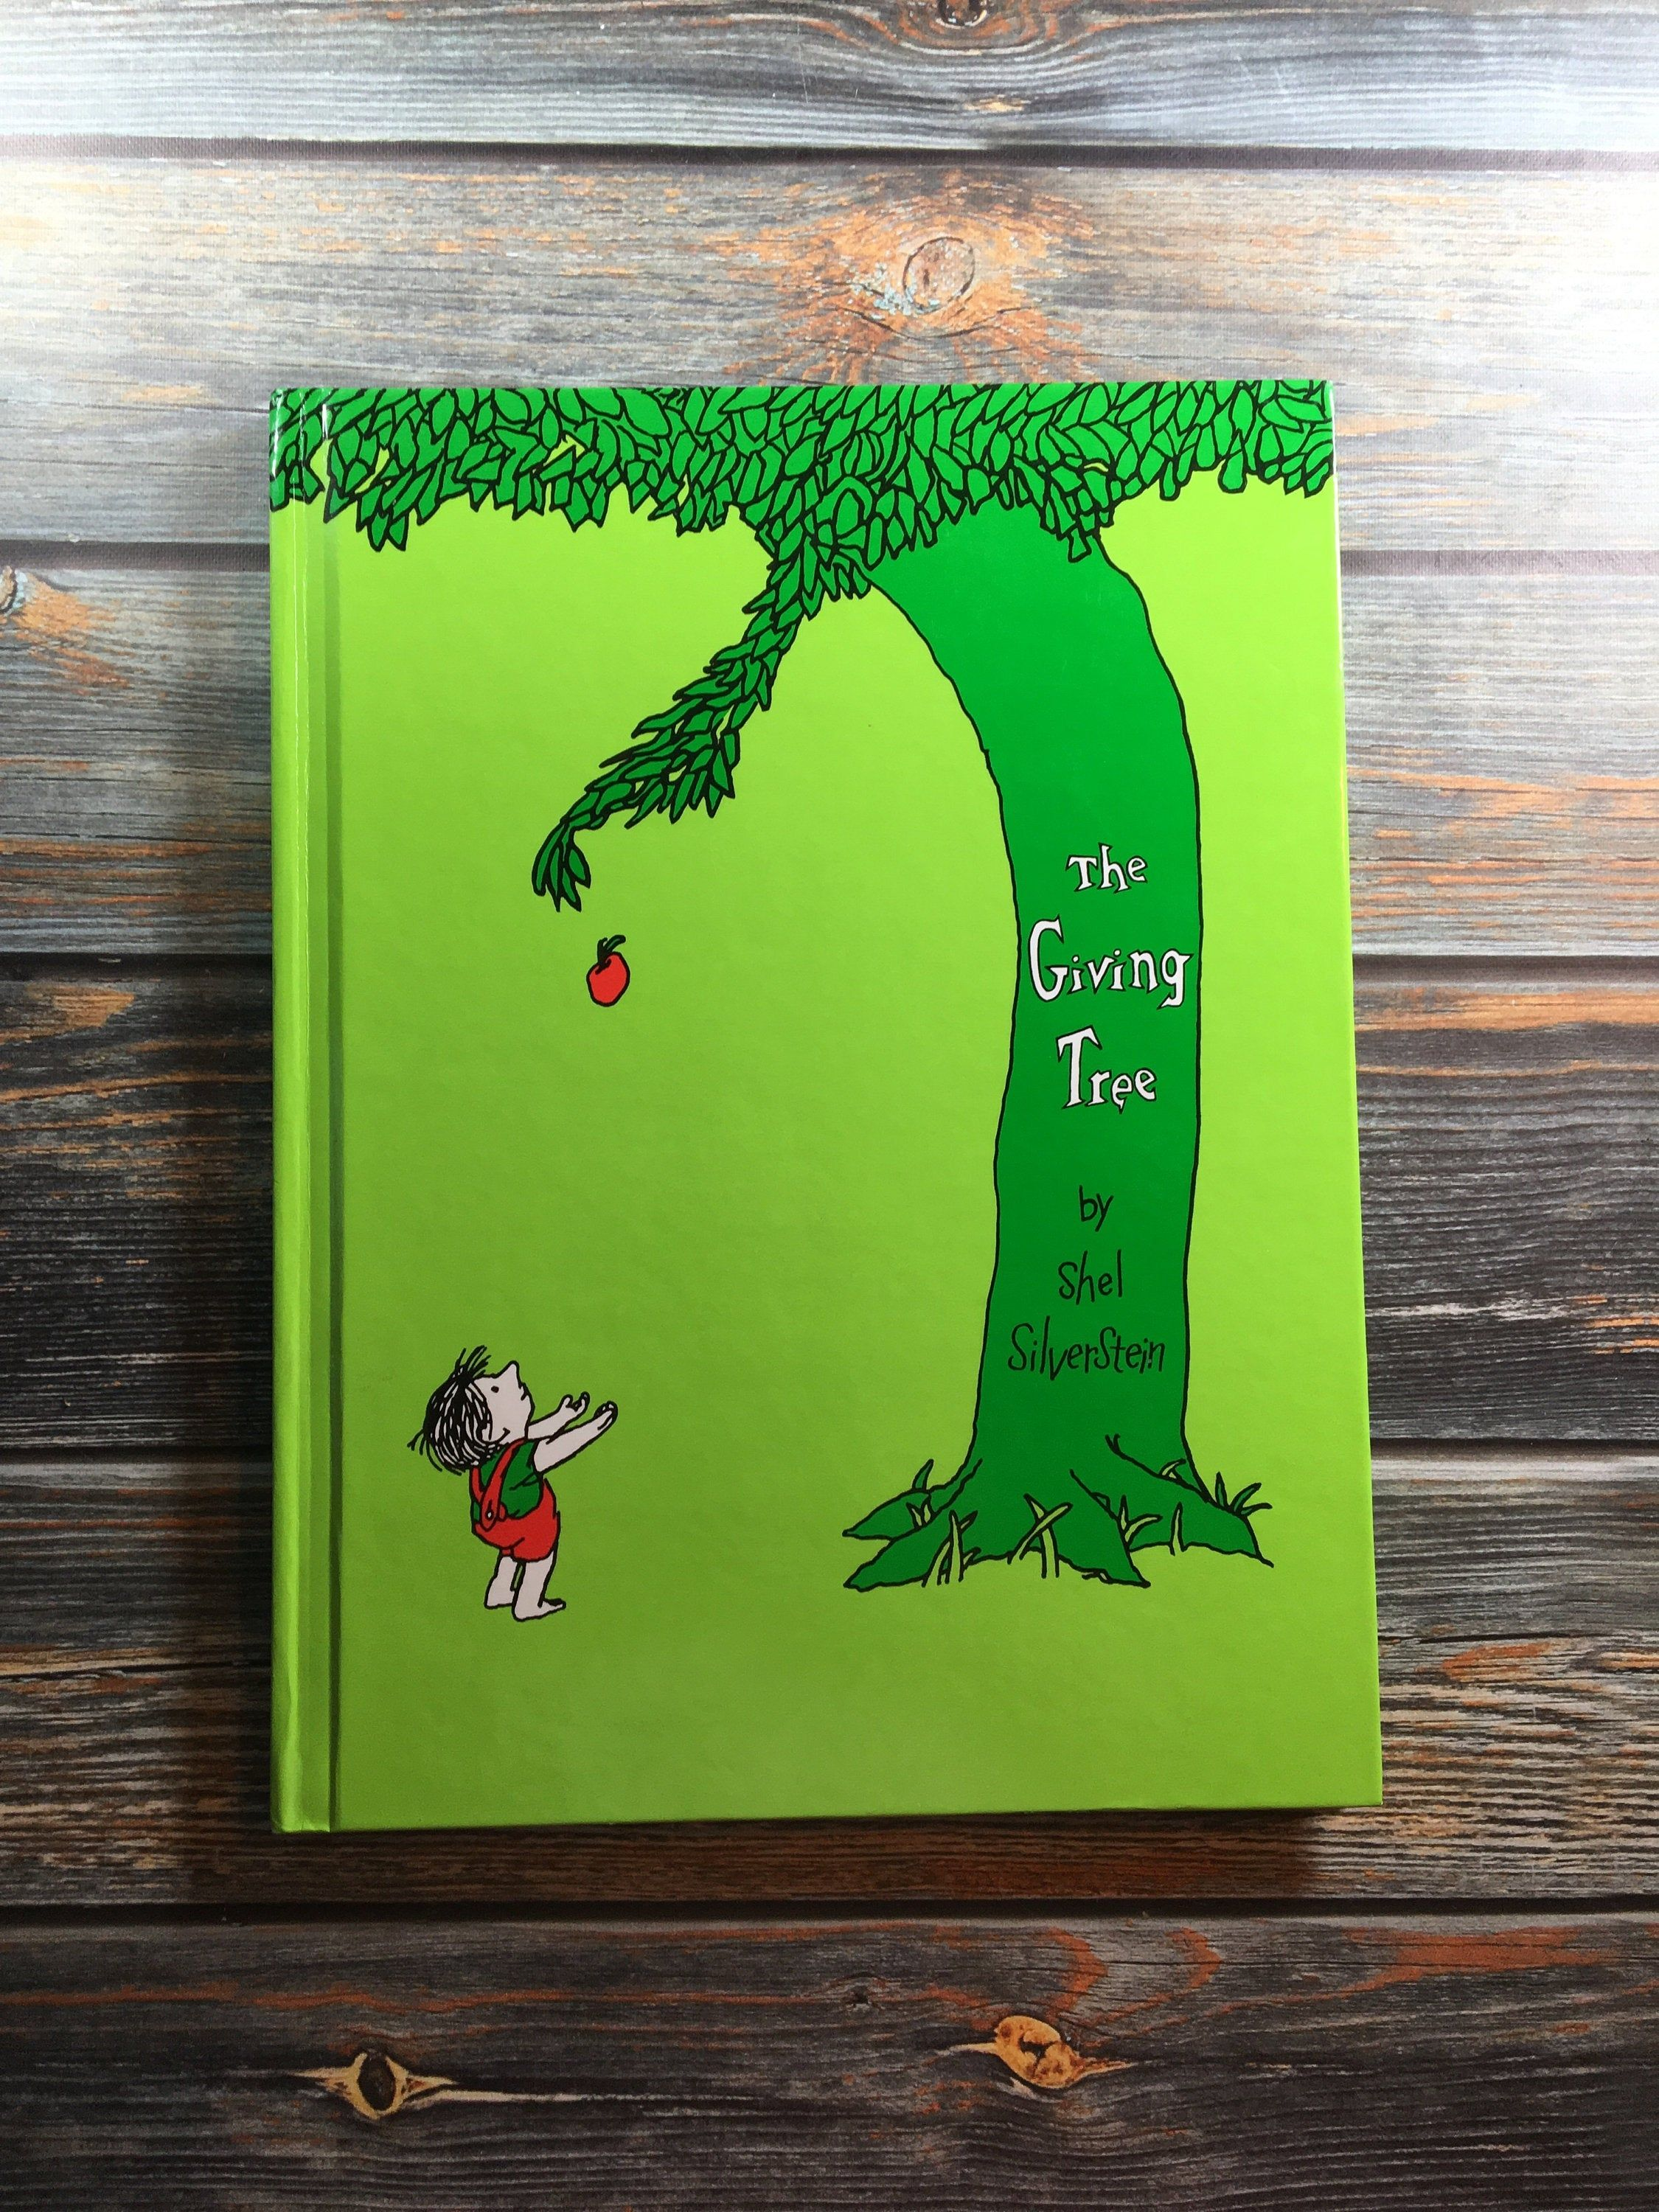 1992 The Giving Tree Shel Silverstein Classic Etsy Shel Silverstein Kids Story Books The Giving Tree